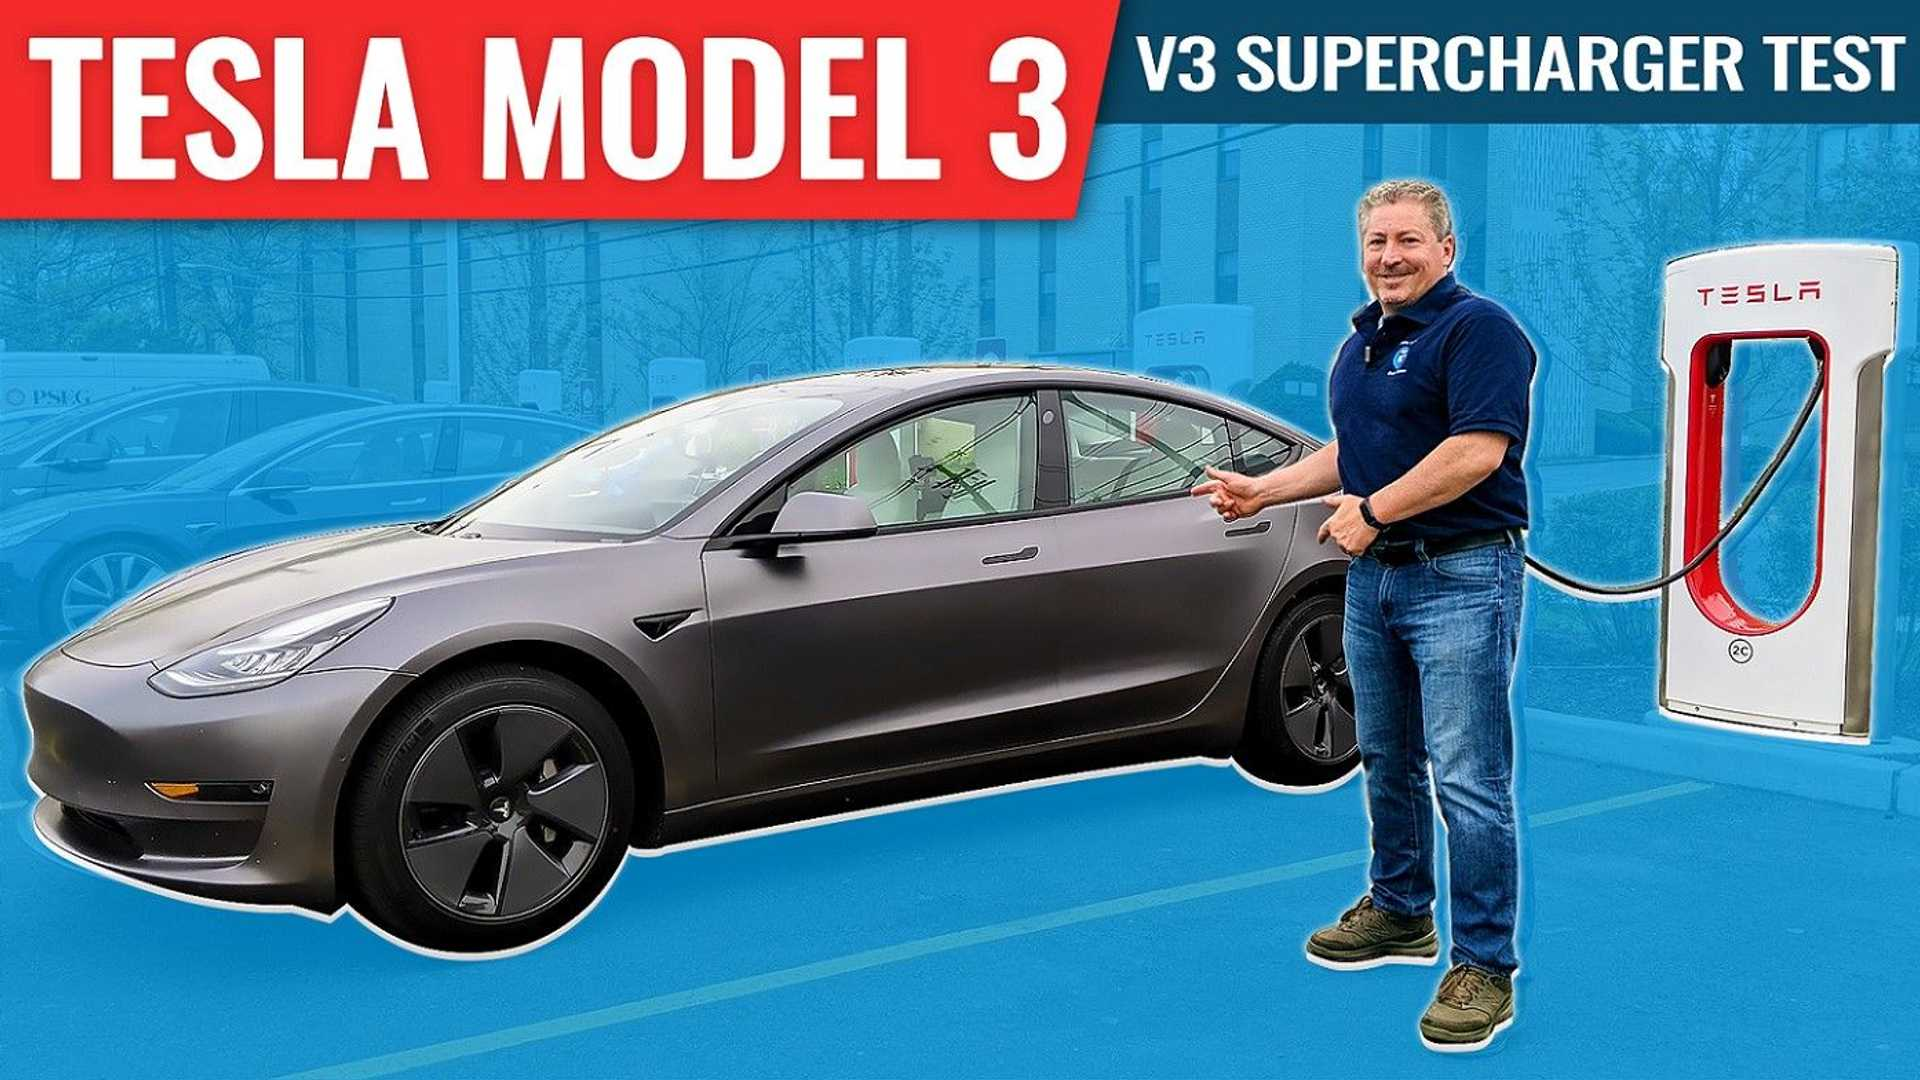 How Fast Does A 2021 Tesla Model 3 Charge? We Find Out